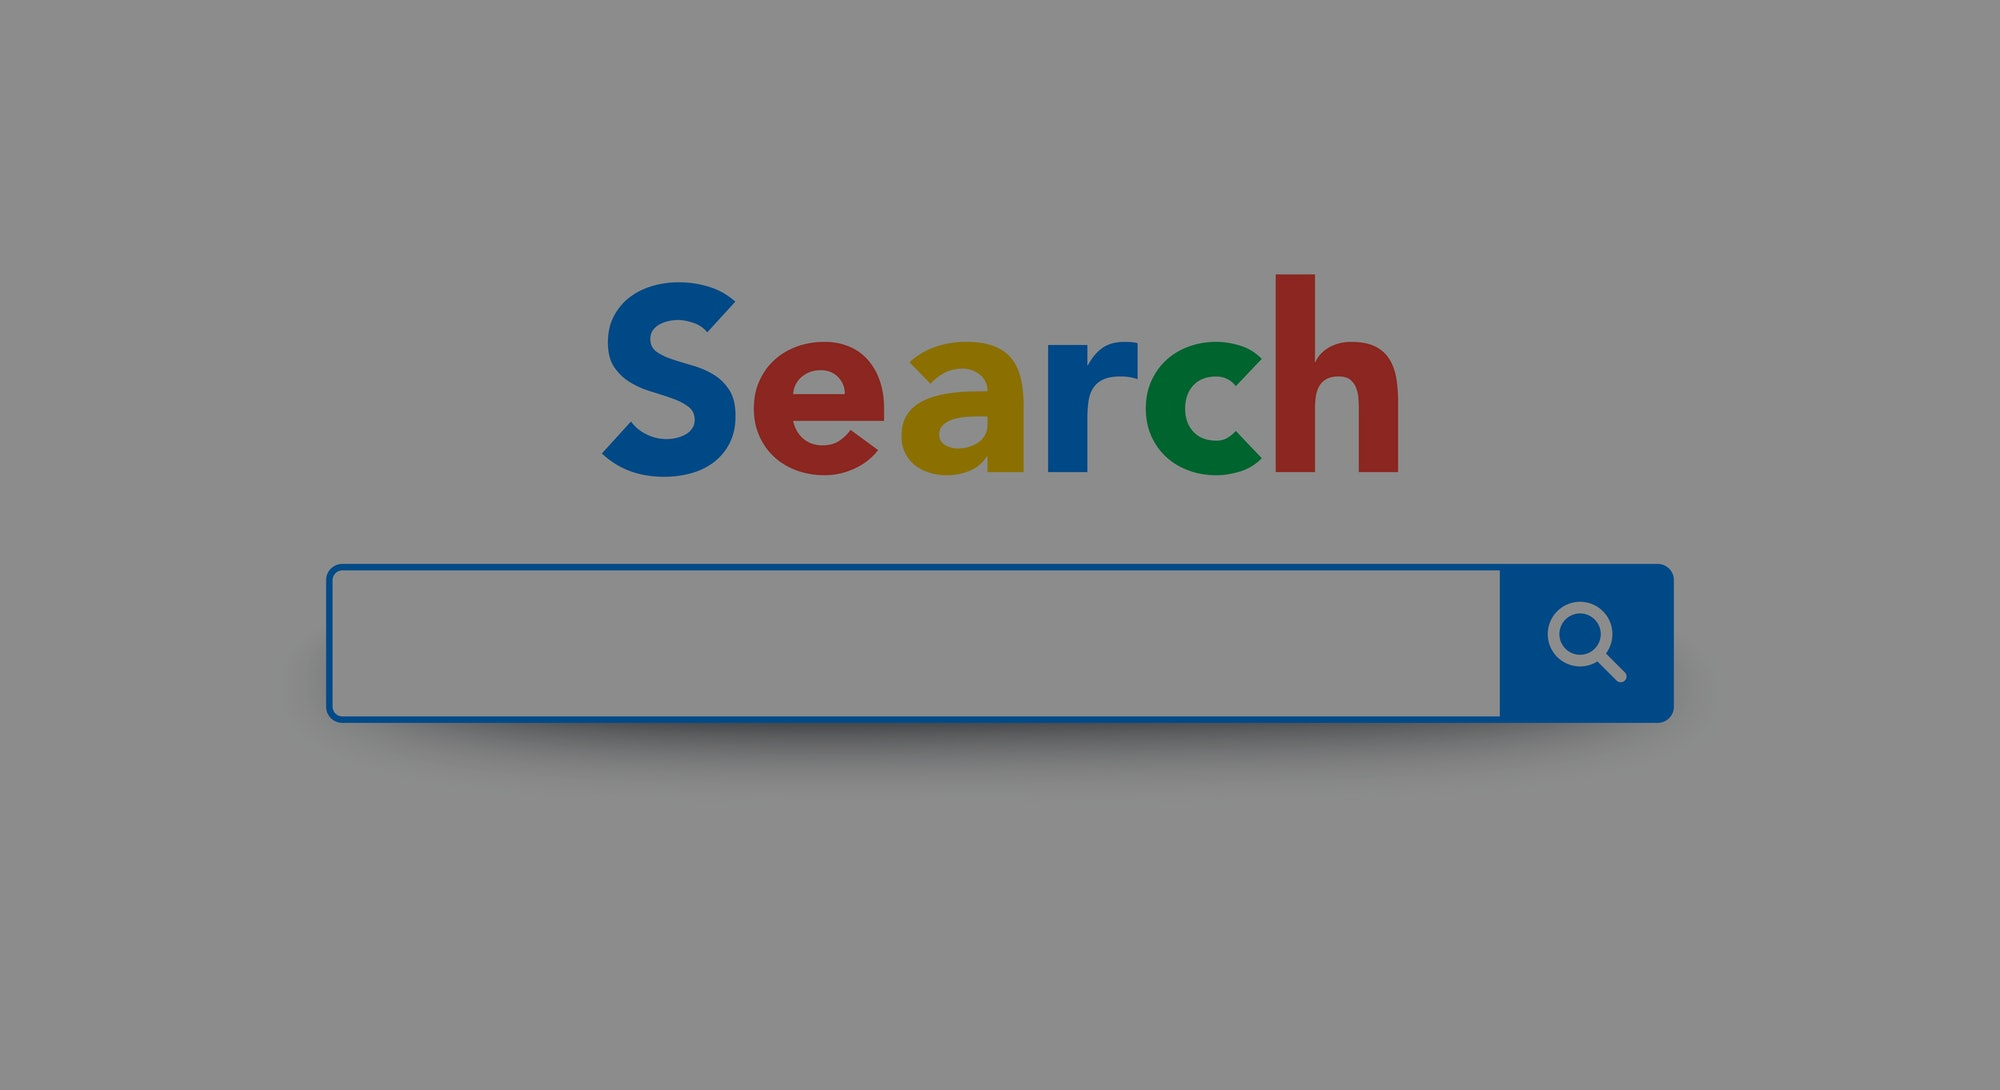 Vector Element Google Search Bar Site, Search Engine Template